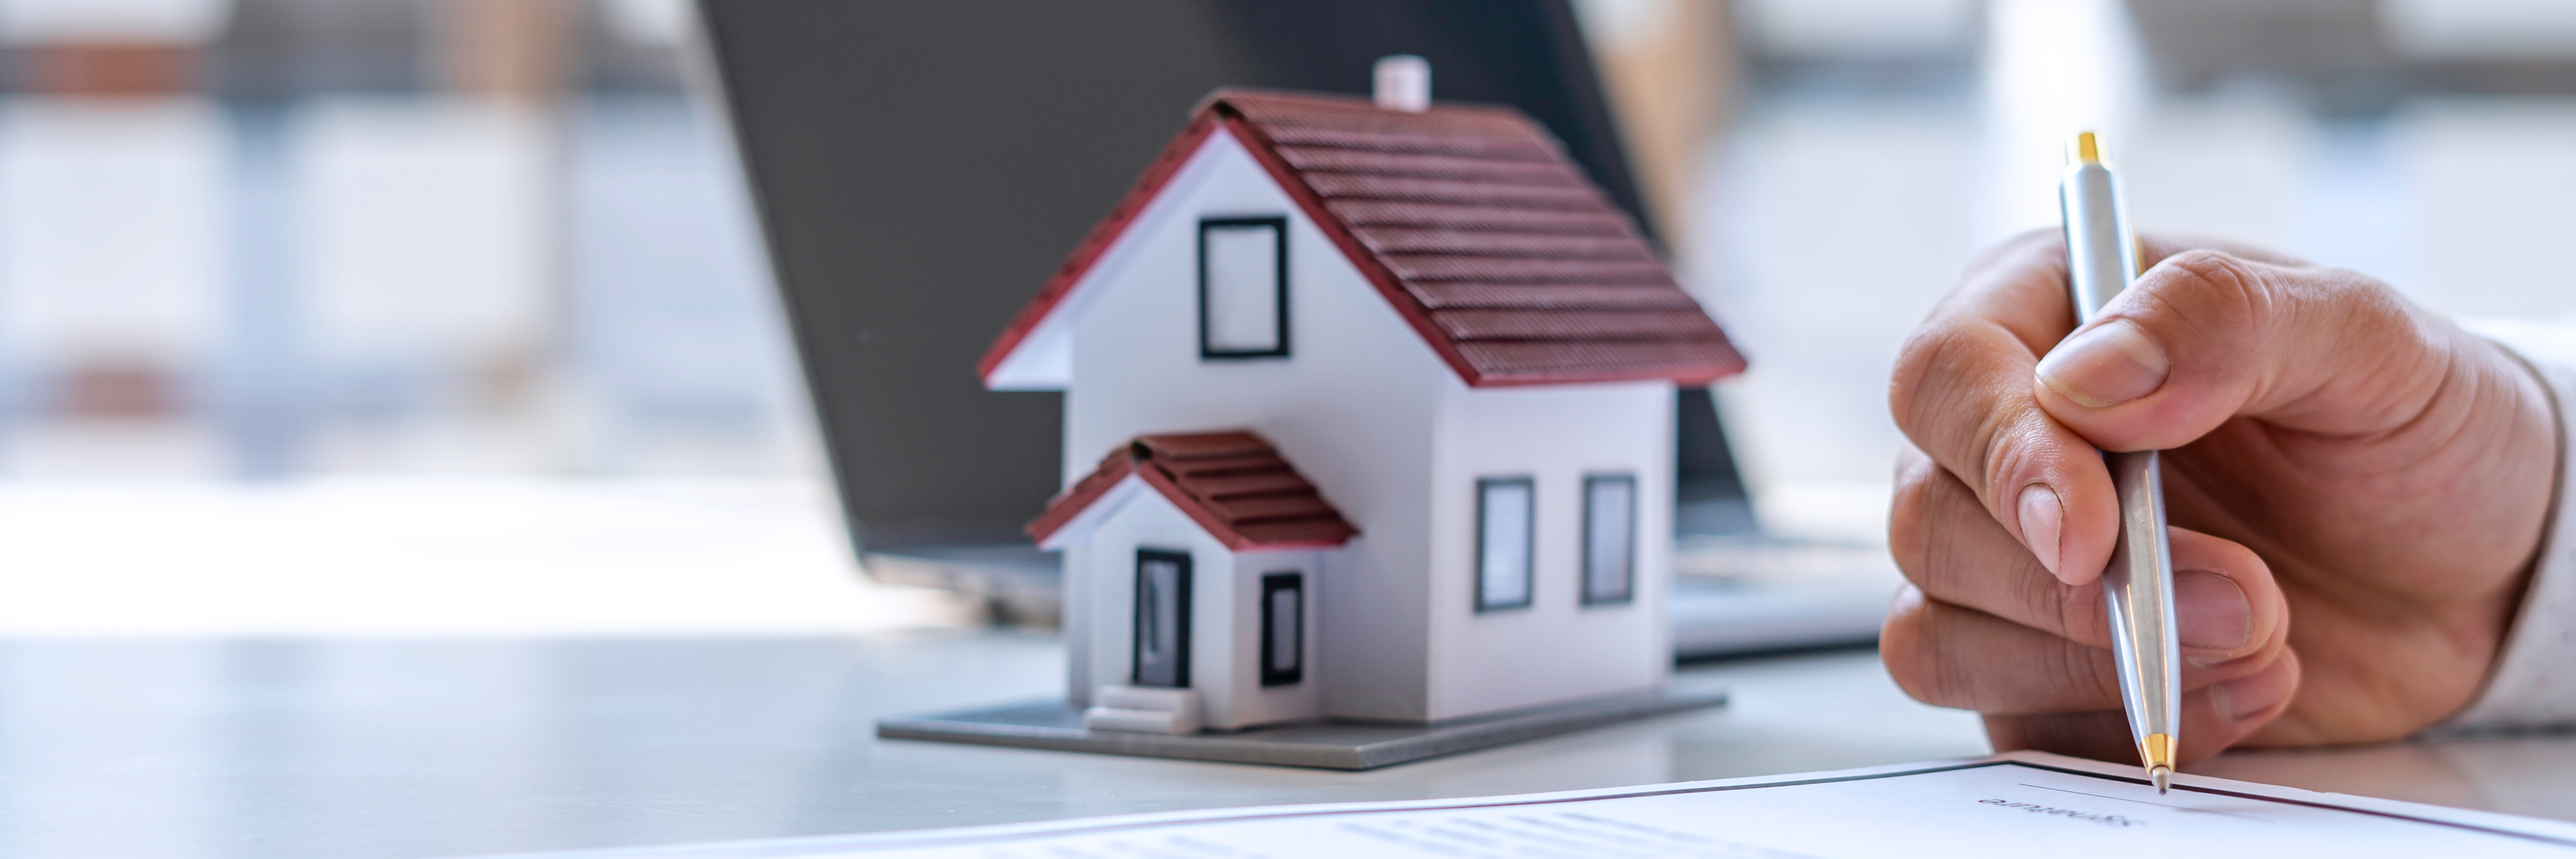 house-signing-paperwork-to-buy-a-house